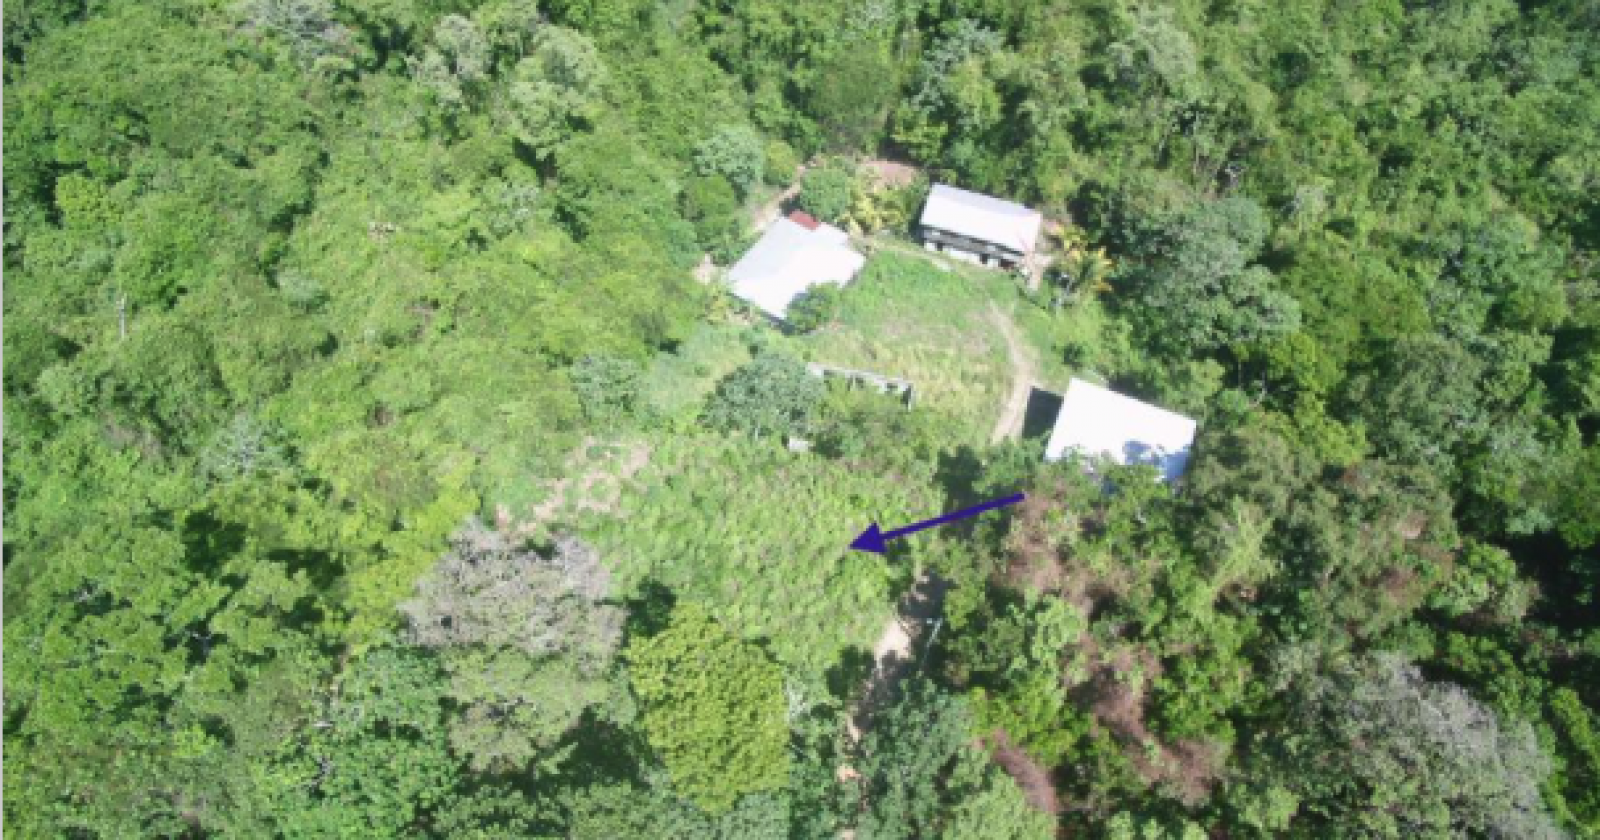 Homesite  Jungle Views Quiet neighborhood Close to Mahogany Bay Port  Close to Ferry dock  Community water  Electricity nearby.